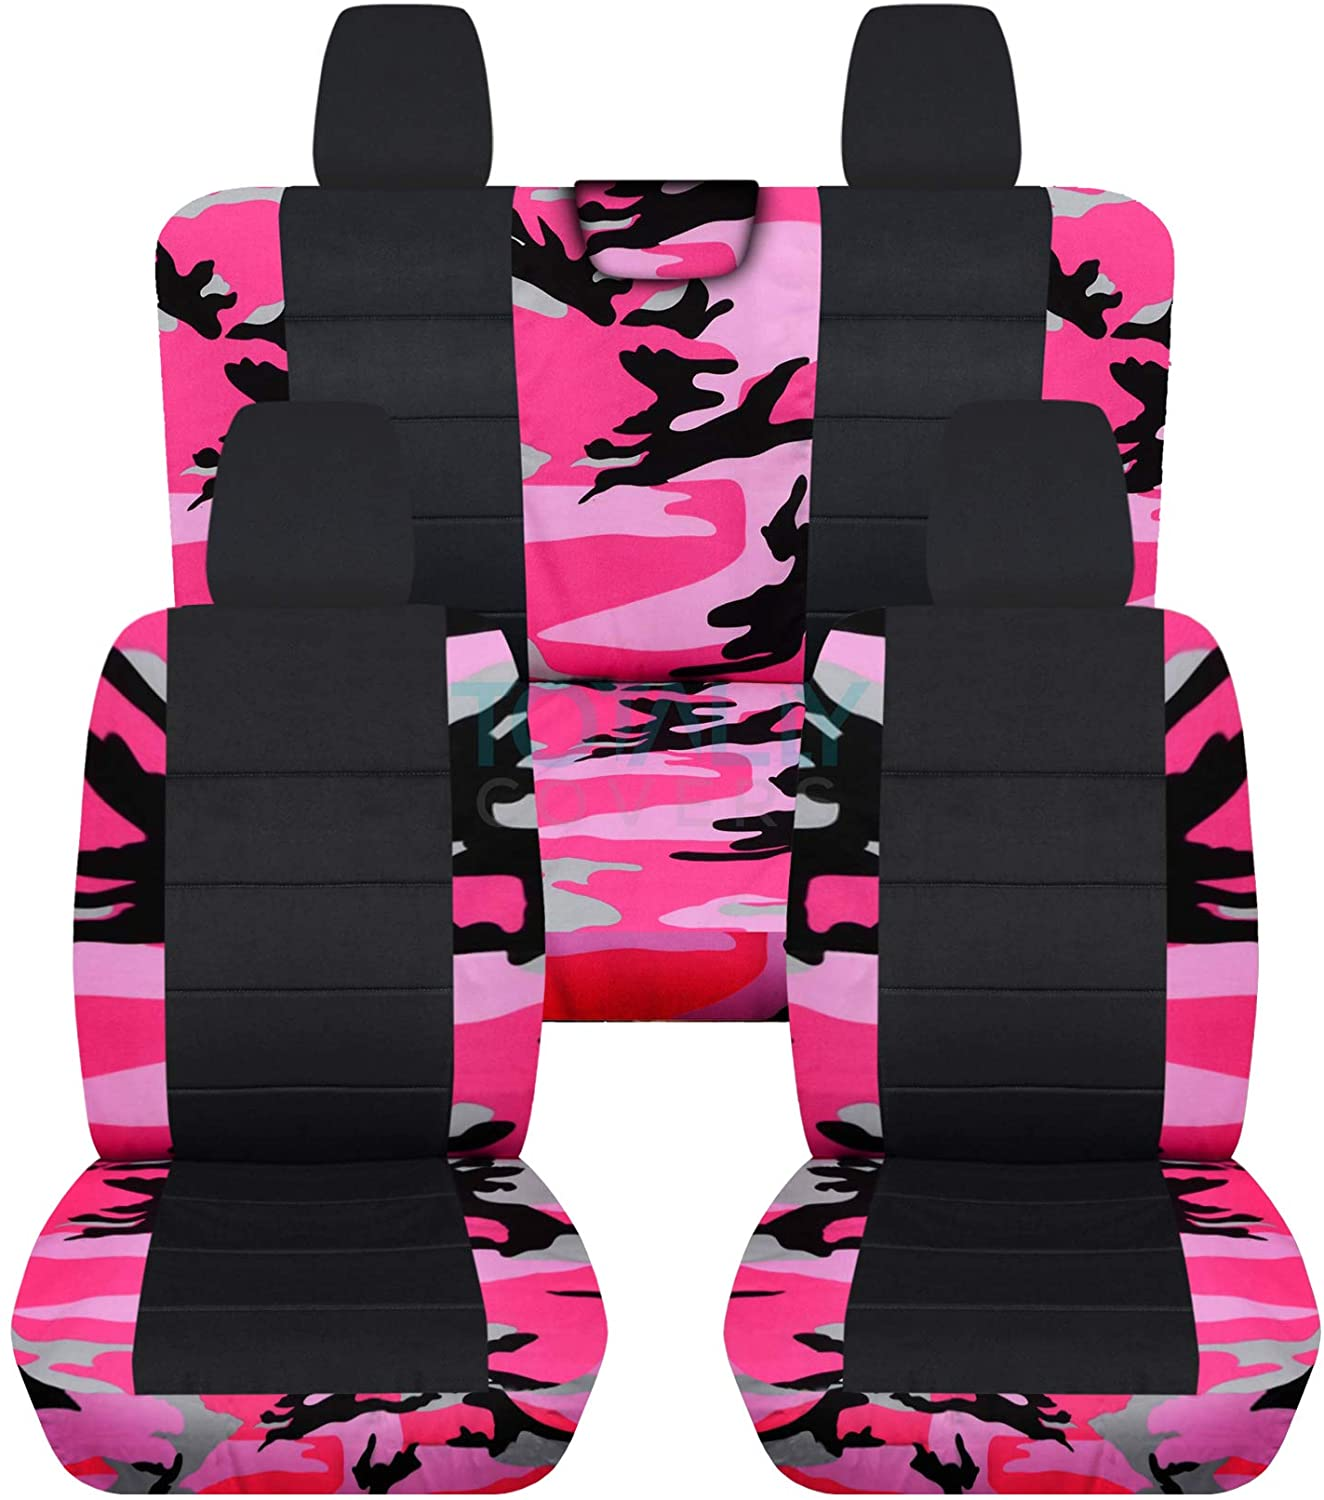 Totally Covers Compatible with 2018-2020 Jeep Wrangler JL Camo & Black Seat Covers: Pink Camouflage - Full Set: Front & Rear (19 Prints) 2-Door/4-Door Solid/Split Bench Back w/wo Armrest/Headrest